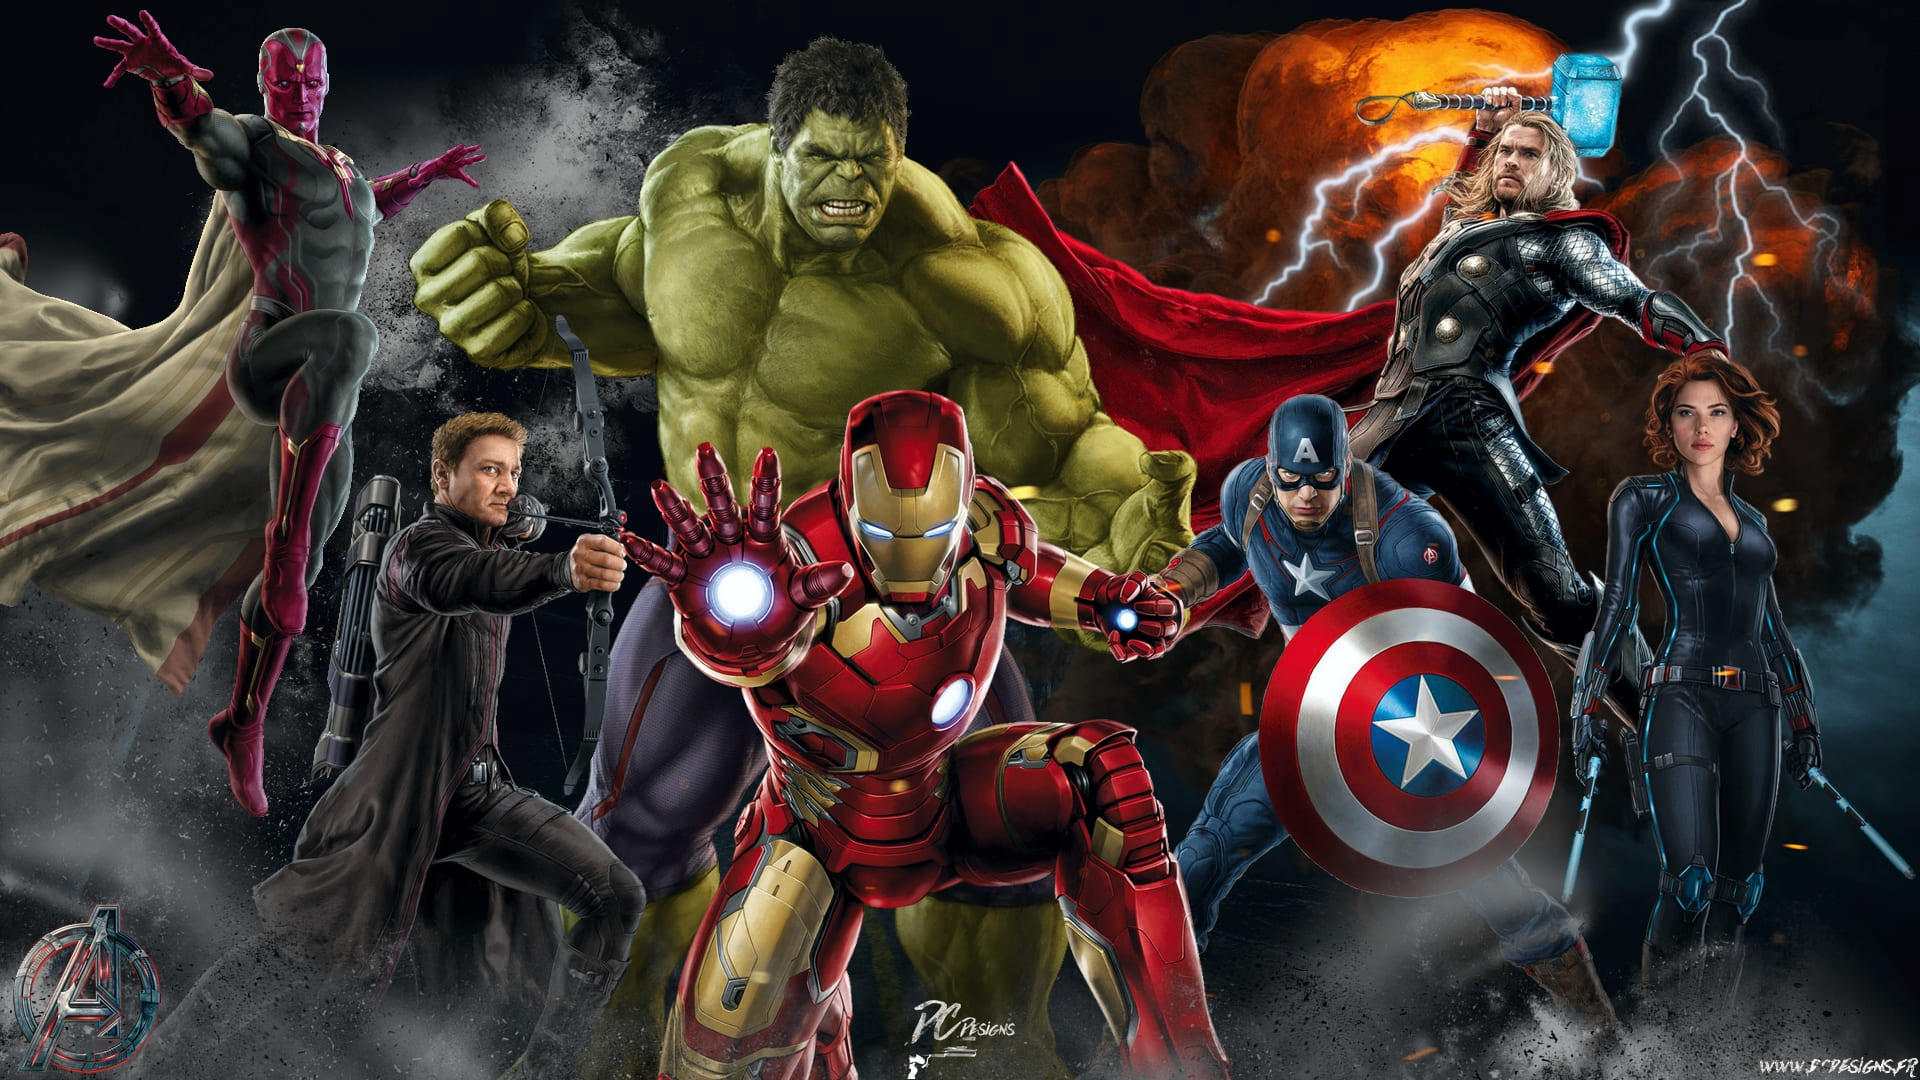 images of avengers